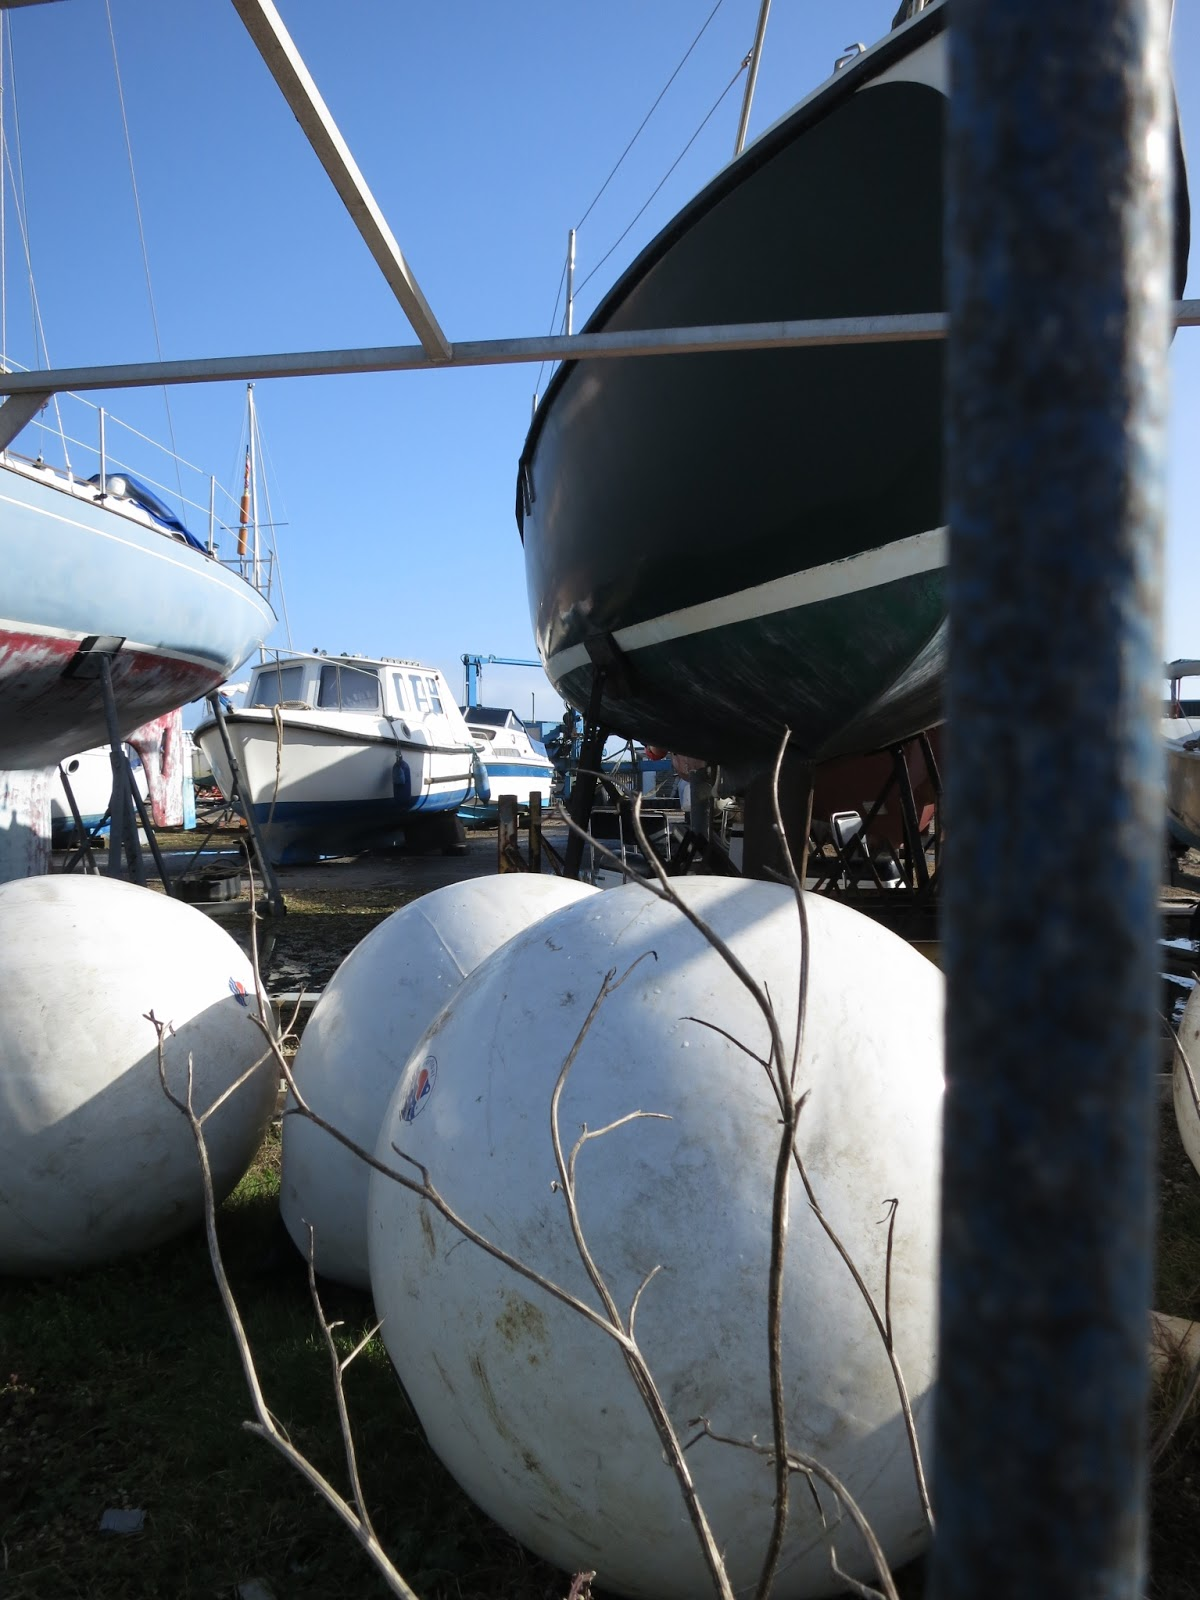 Three large white balls and boats on land in a boatyard